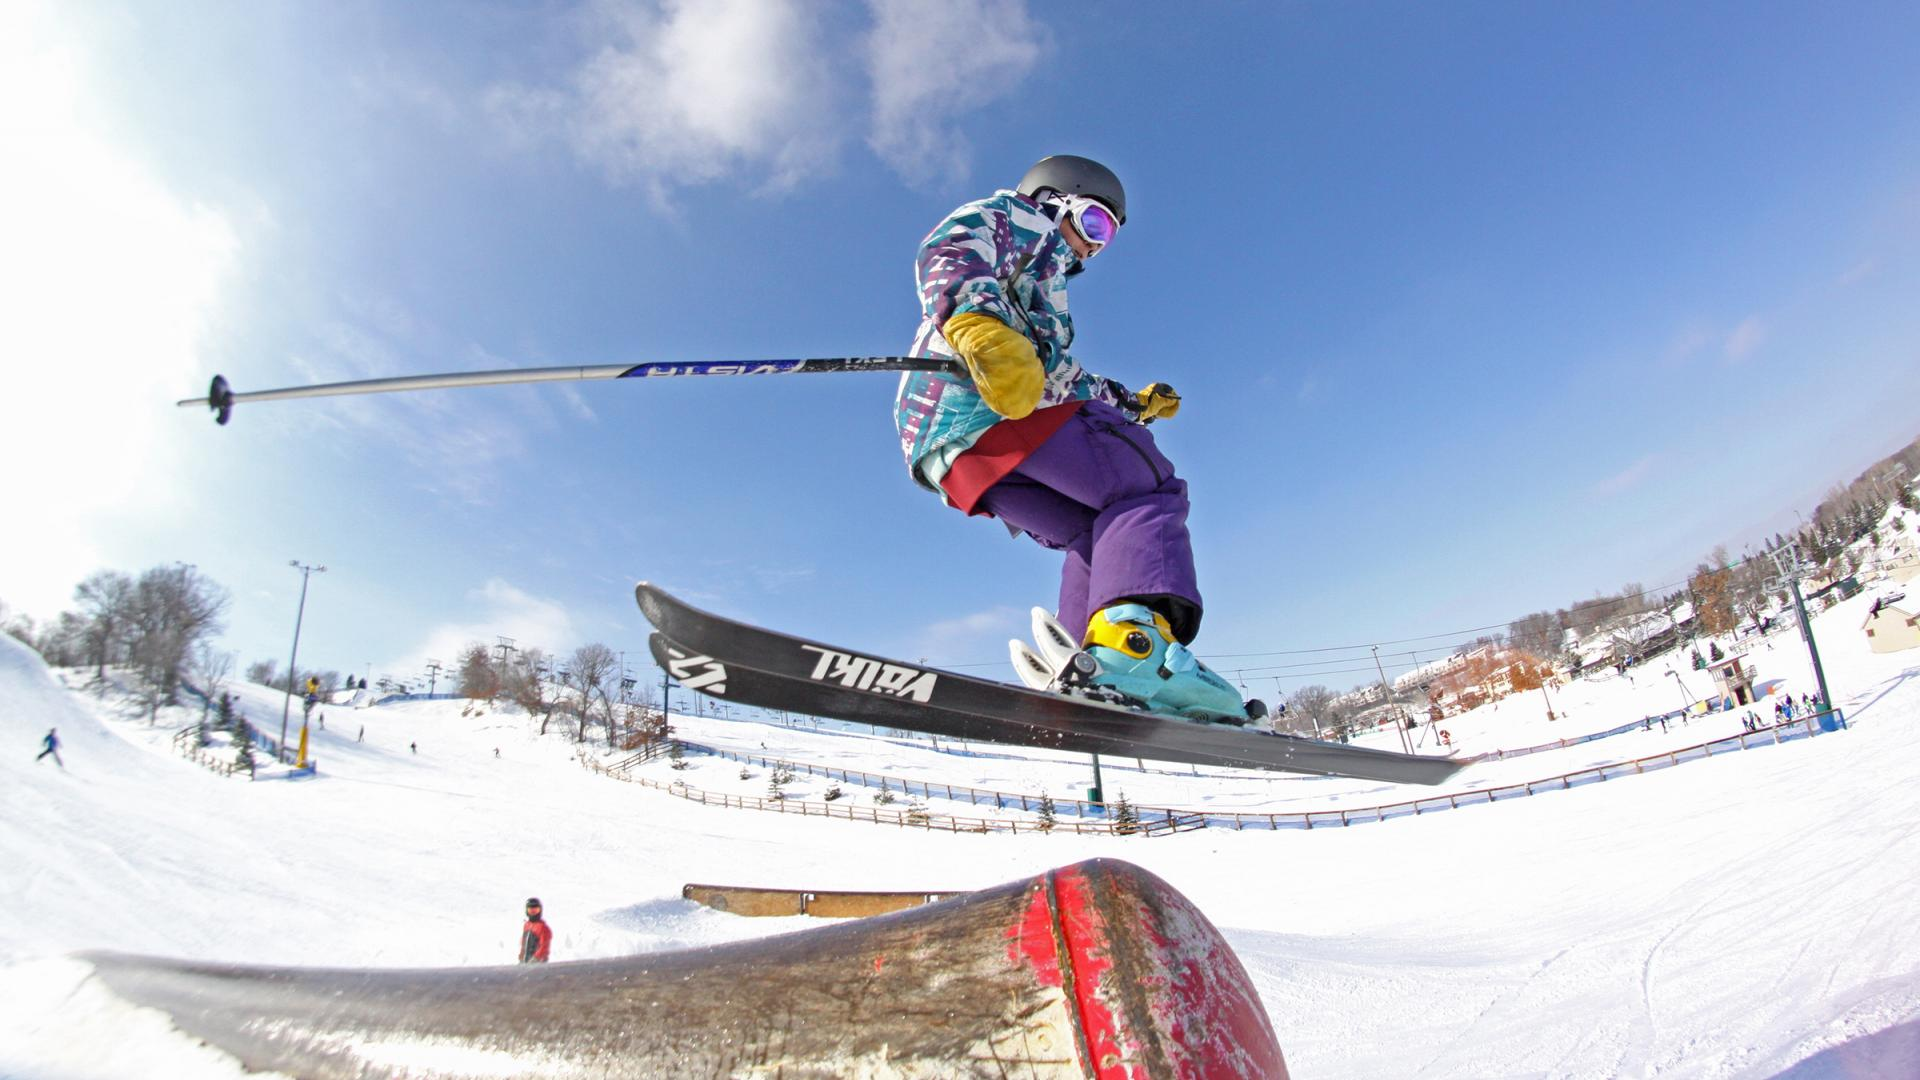 Downhill skier hits a grind at Buck Hill